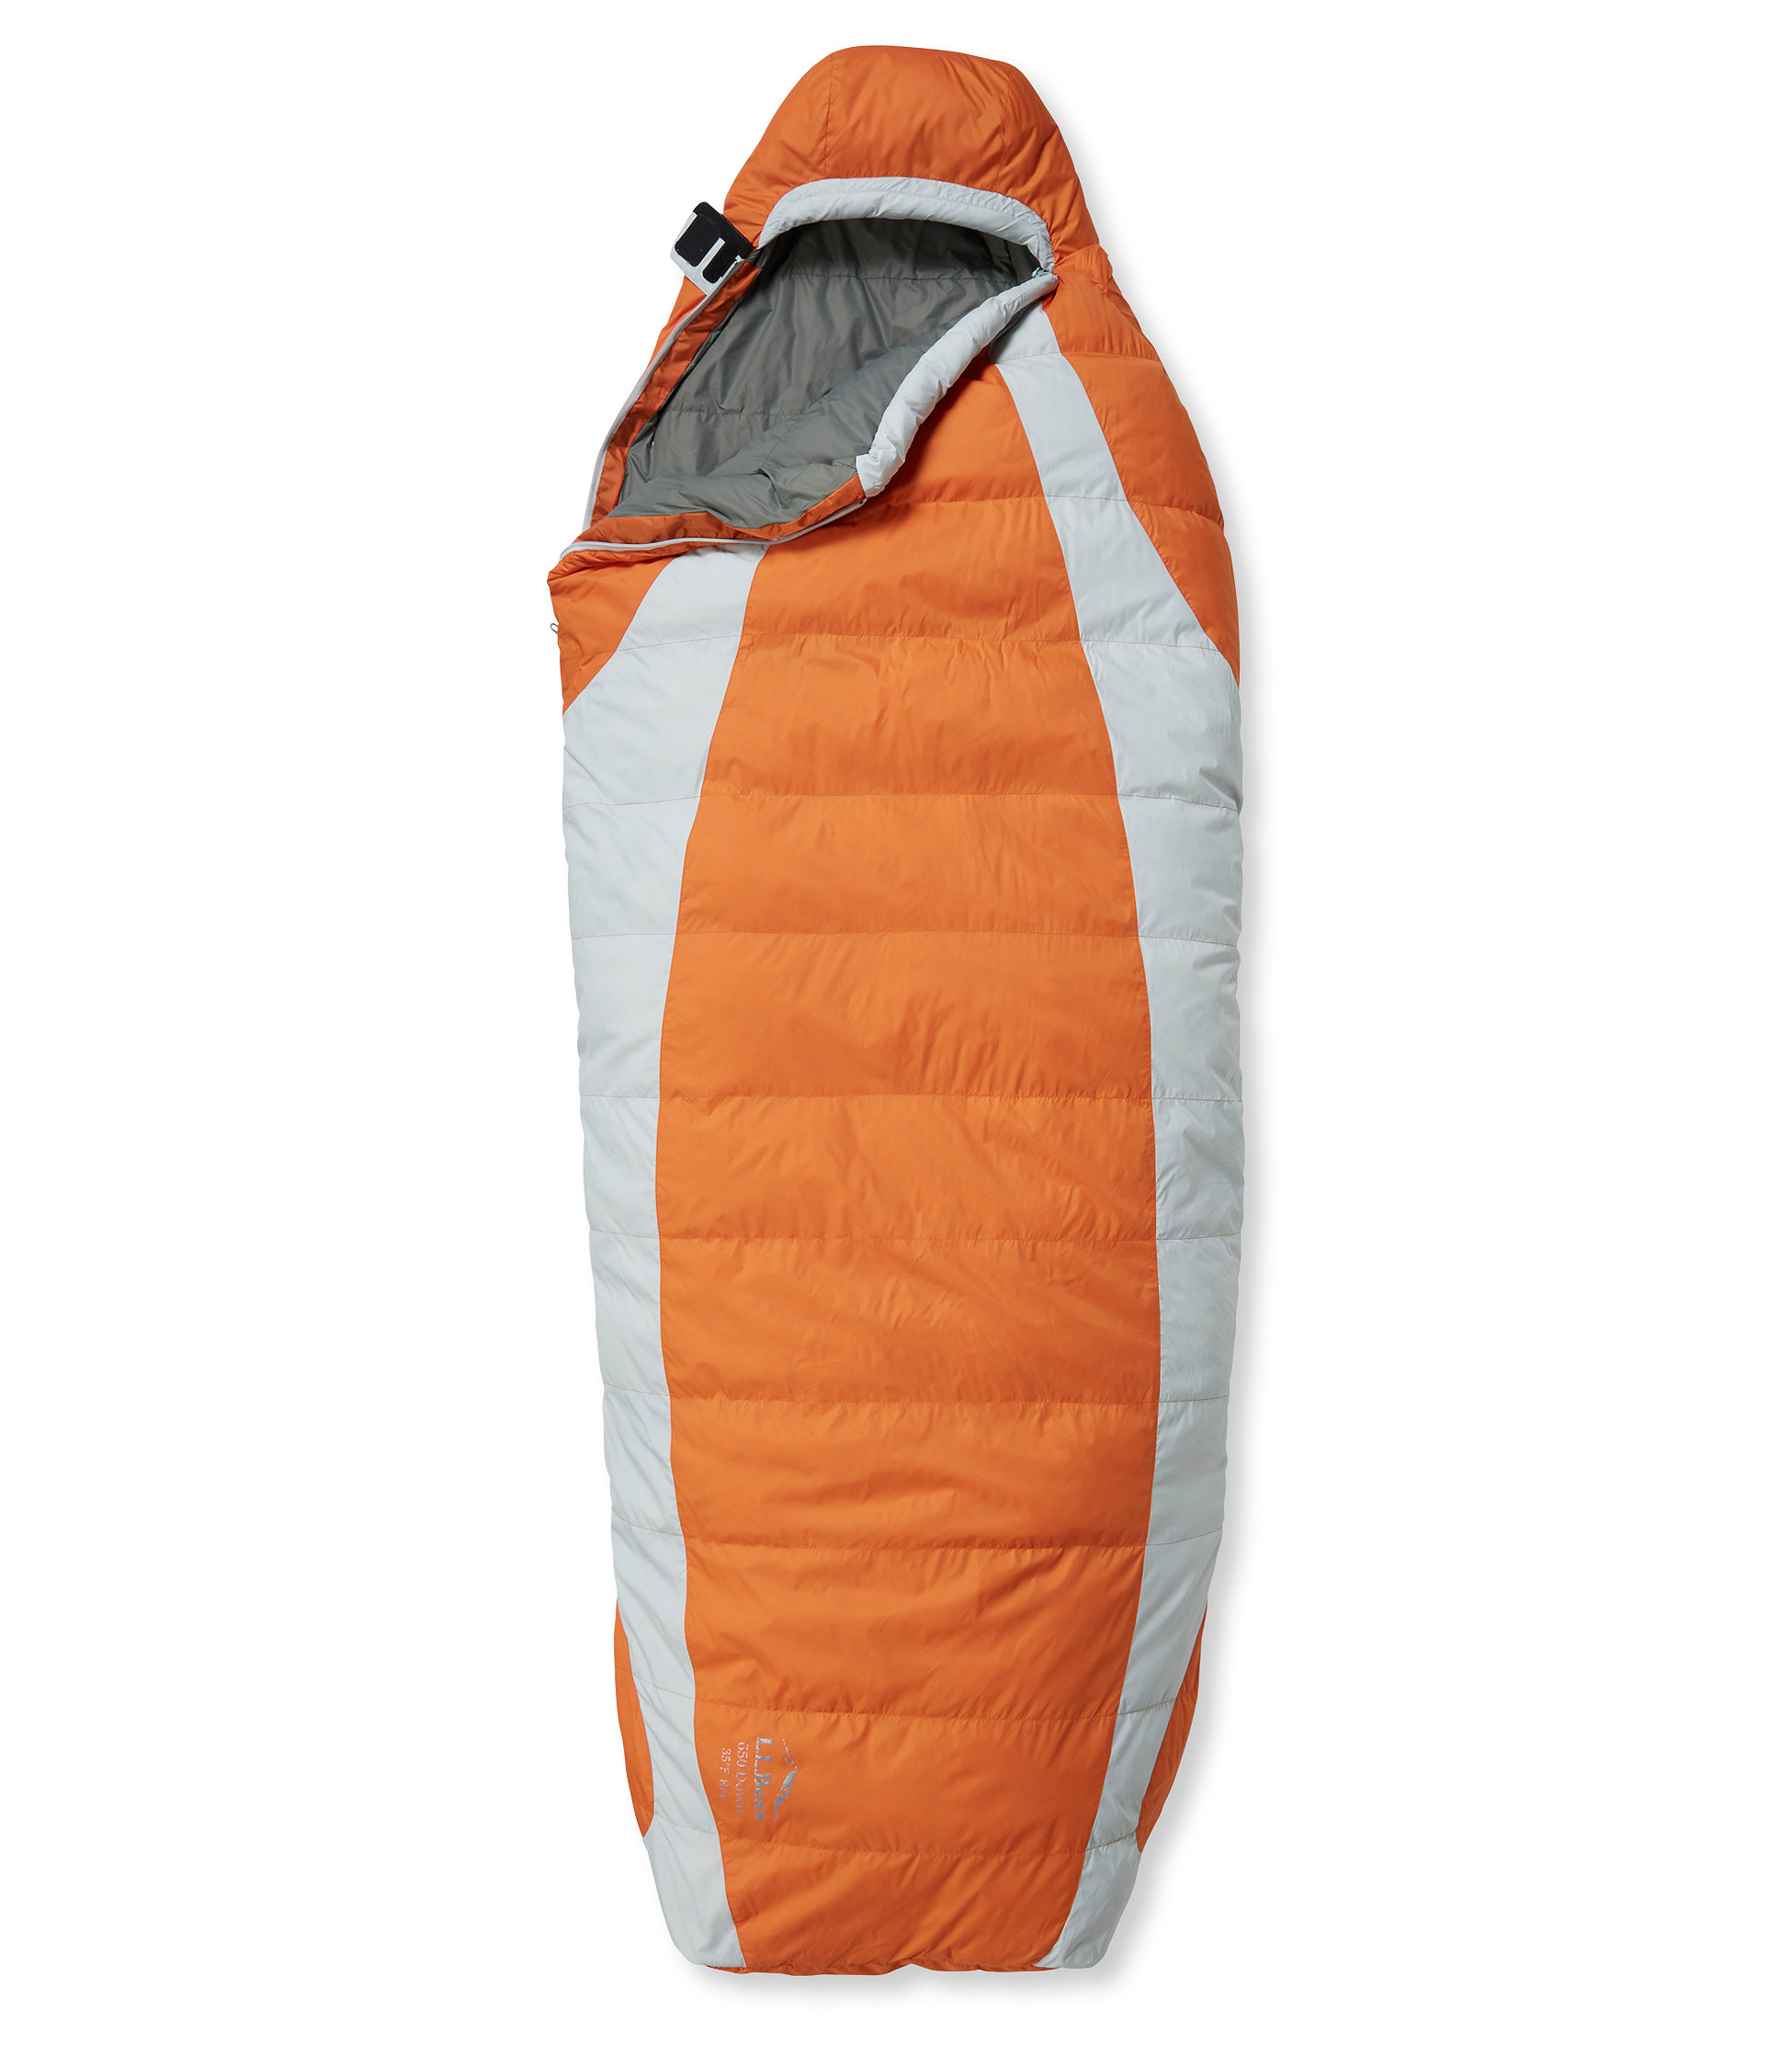 photo: L.L.Bean Down Sleeping Bag with DownTek, Semi-Rectangular 35° warm weather down sleeping bag